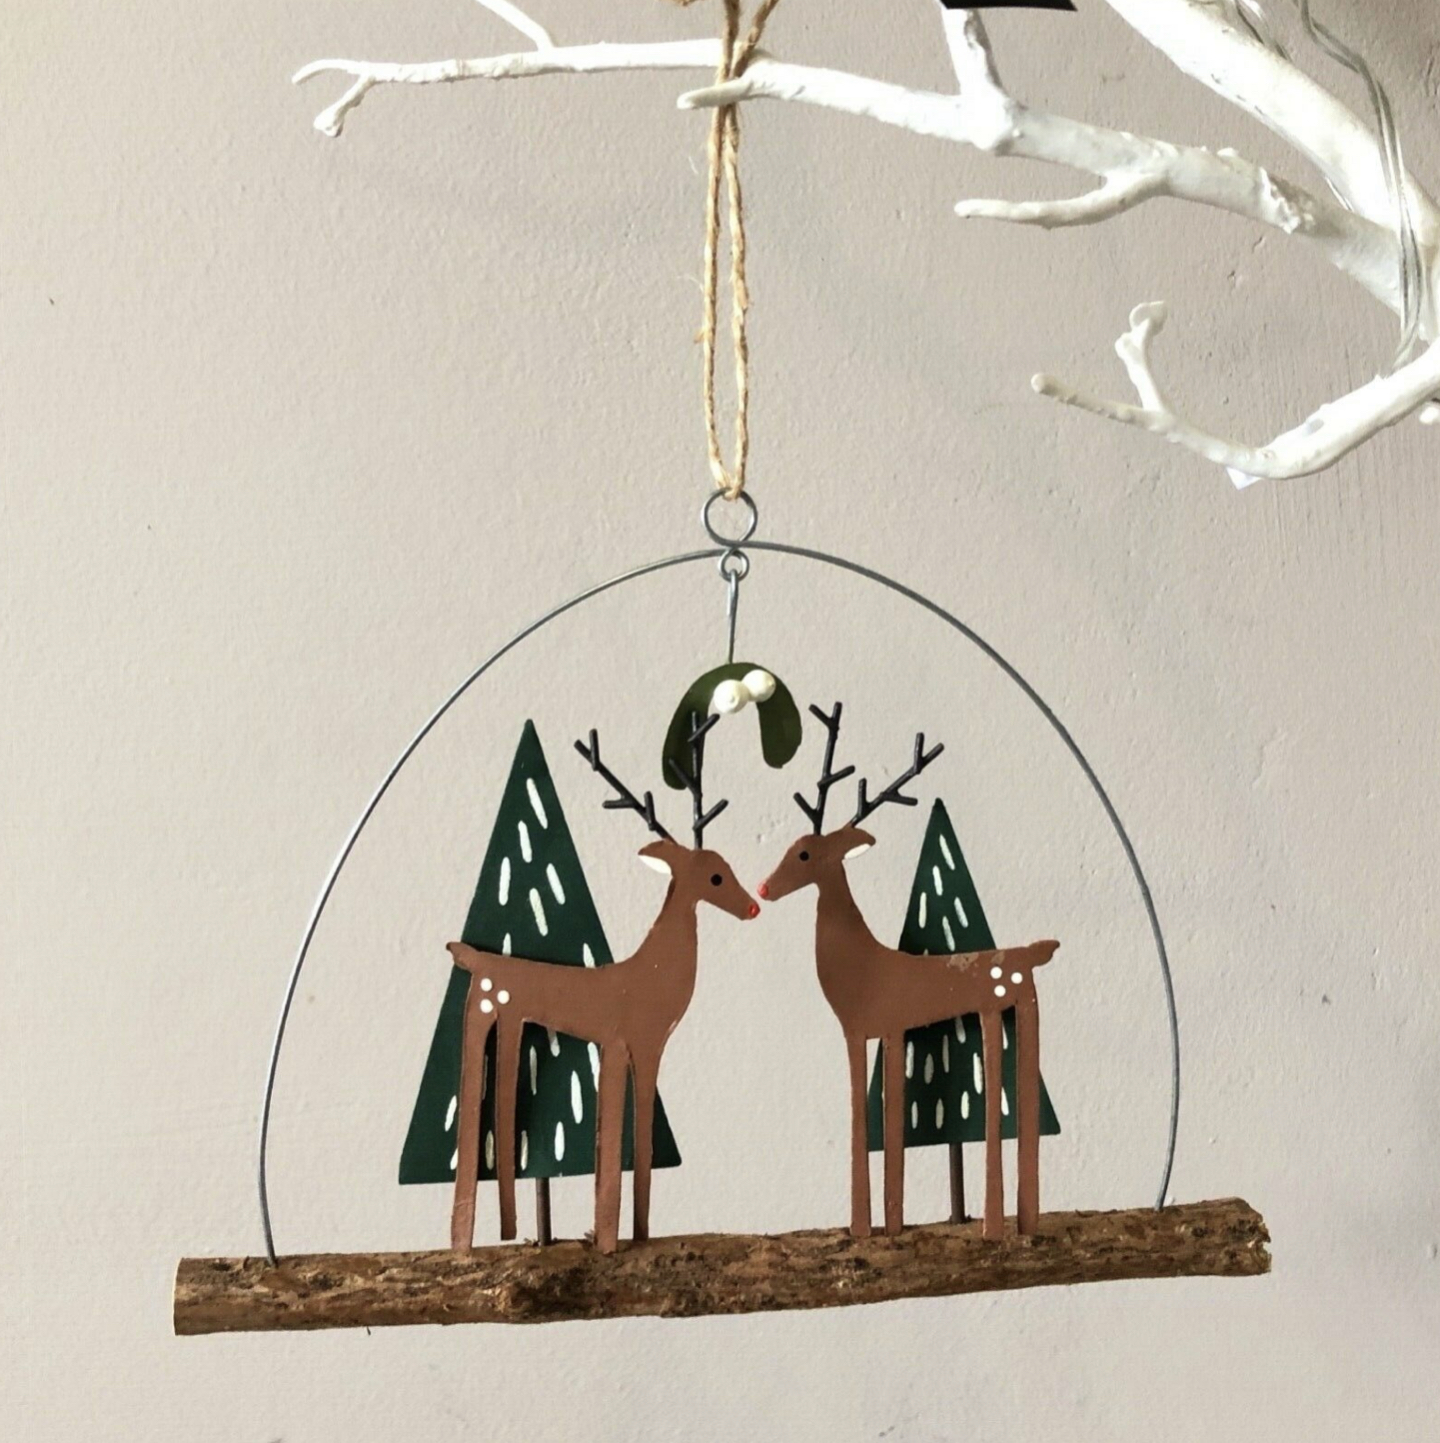 Chic deer couple under the mistletoe hanging decoration by shoeless joe